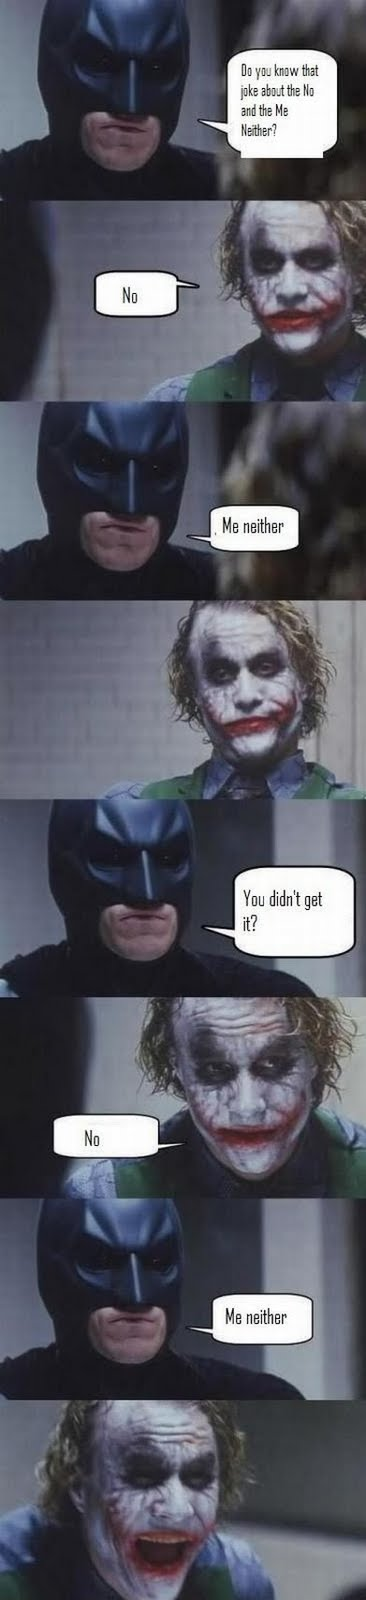 Joke About No And Me Neither - Batman - Joker